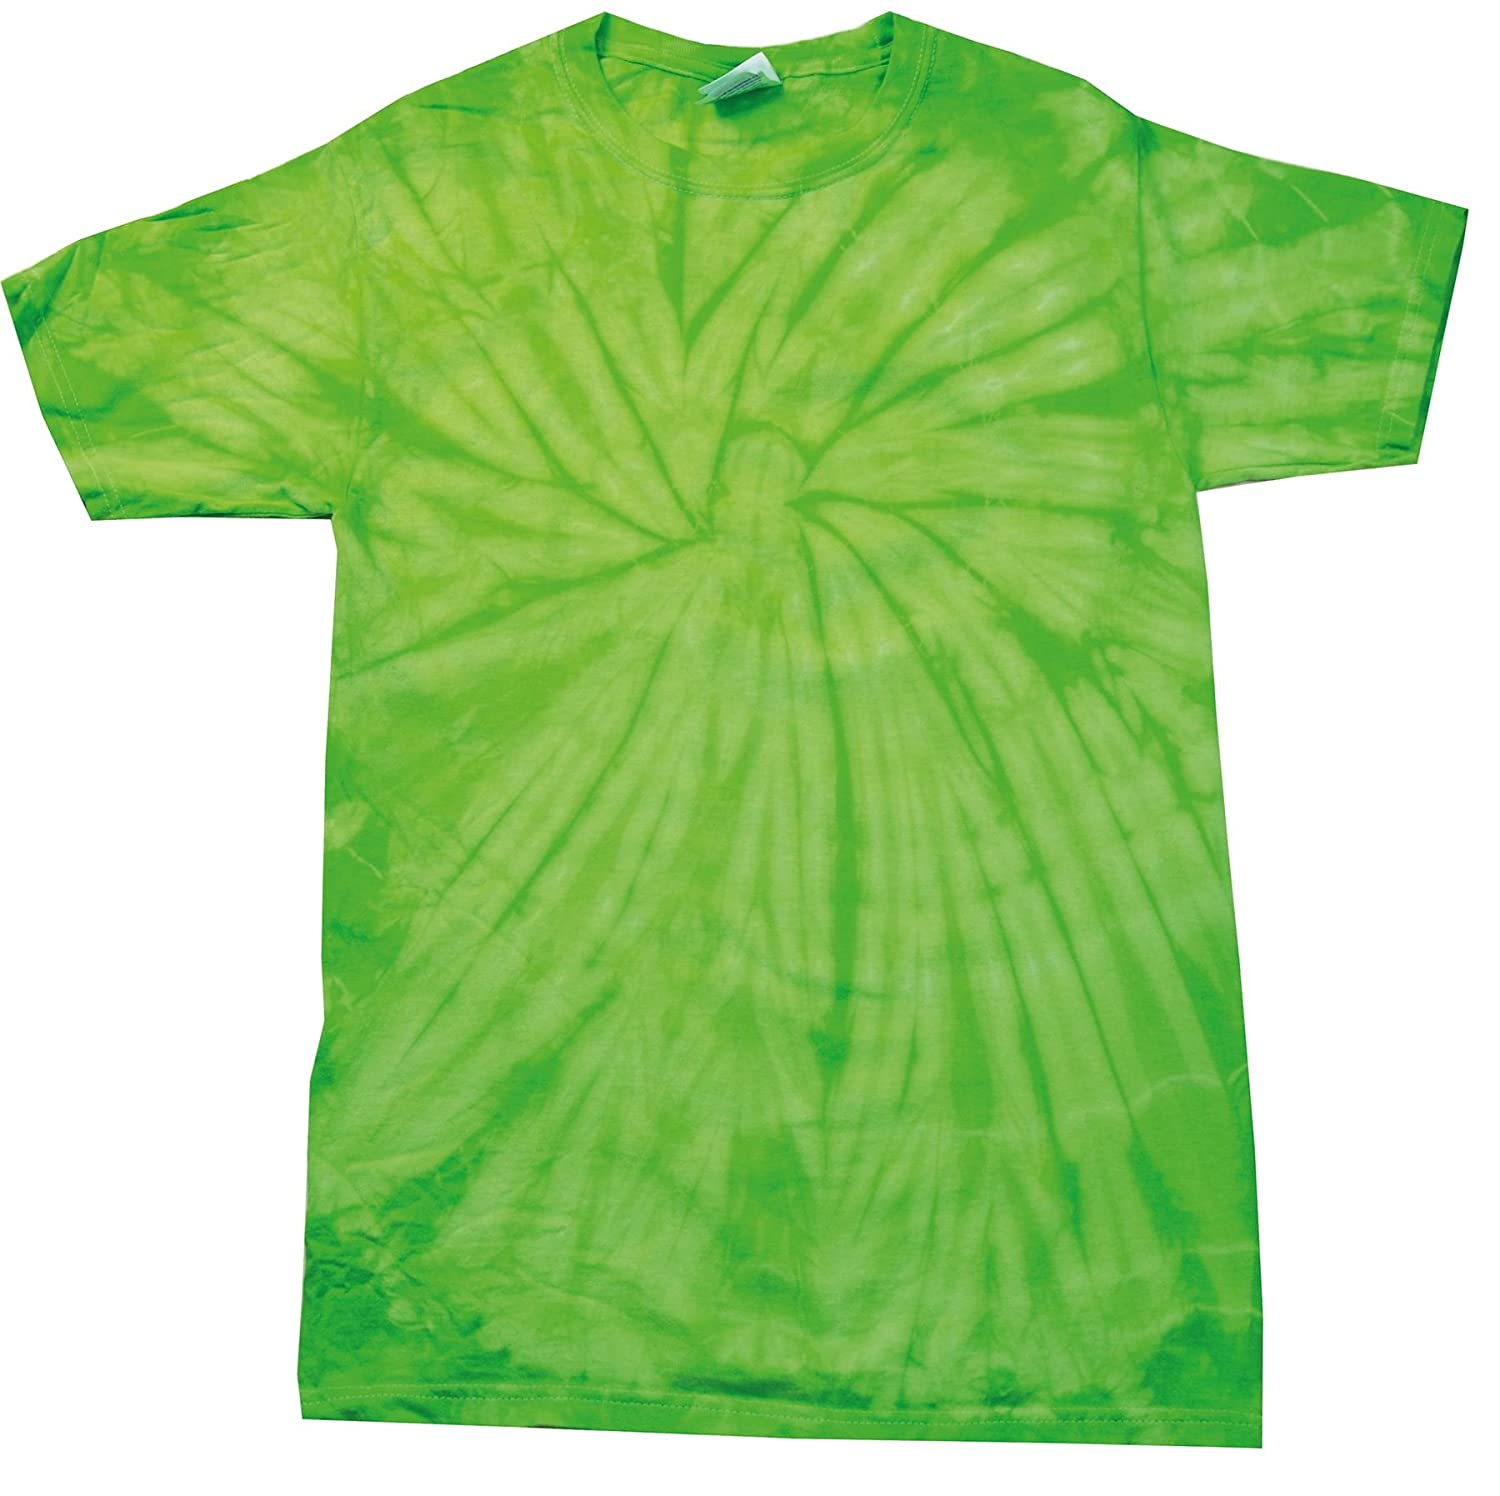 Colortone-T Shirts-Tops-Kids tonal spider tshirt top-Hand-dyed